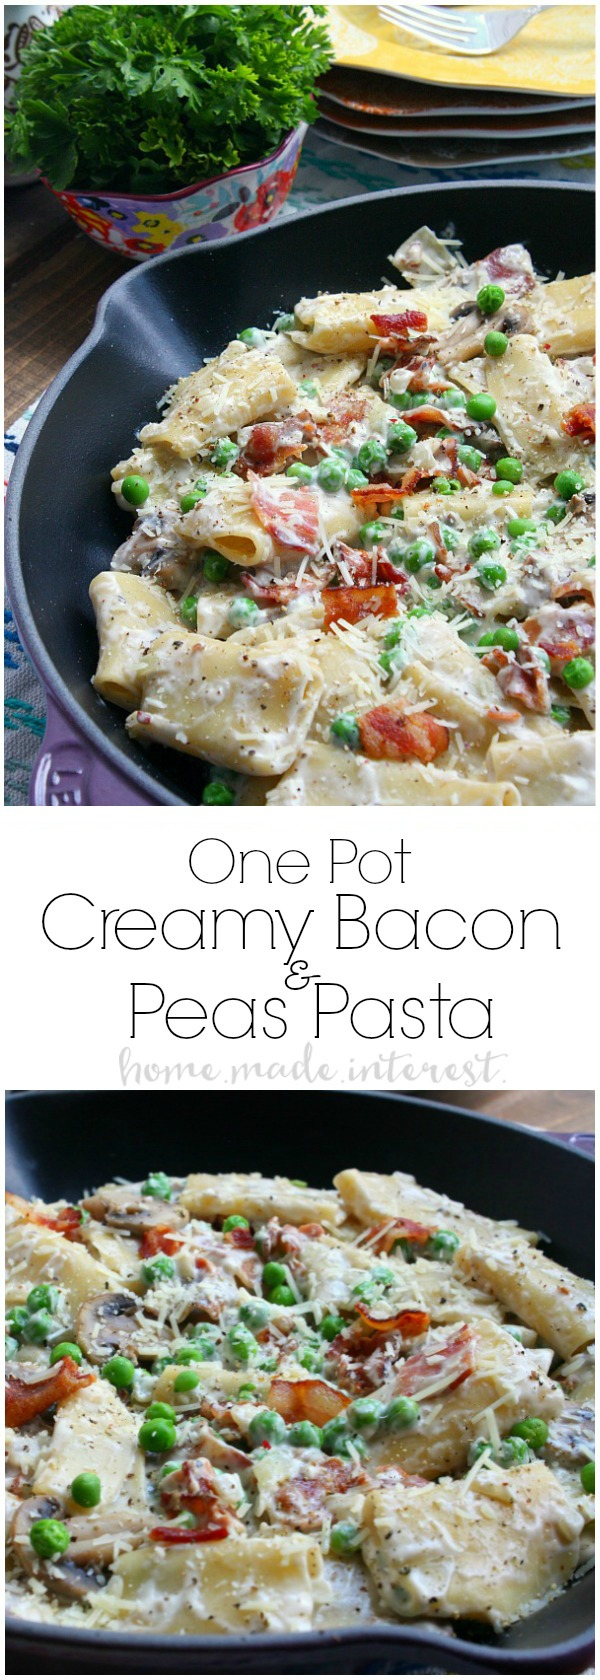 This easy One Pot Creamy Bacon and Peas takes less than 30 minutes to make! It is an easy dinner recipe that is perfect for summer when you want to spend time enjoying the sunshine and not slaving away over dinner!